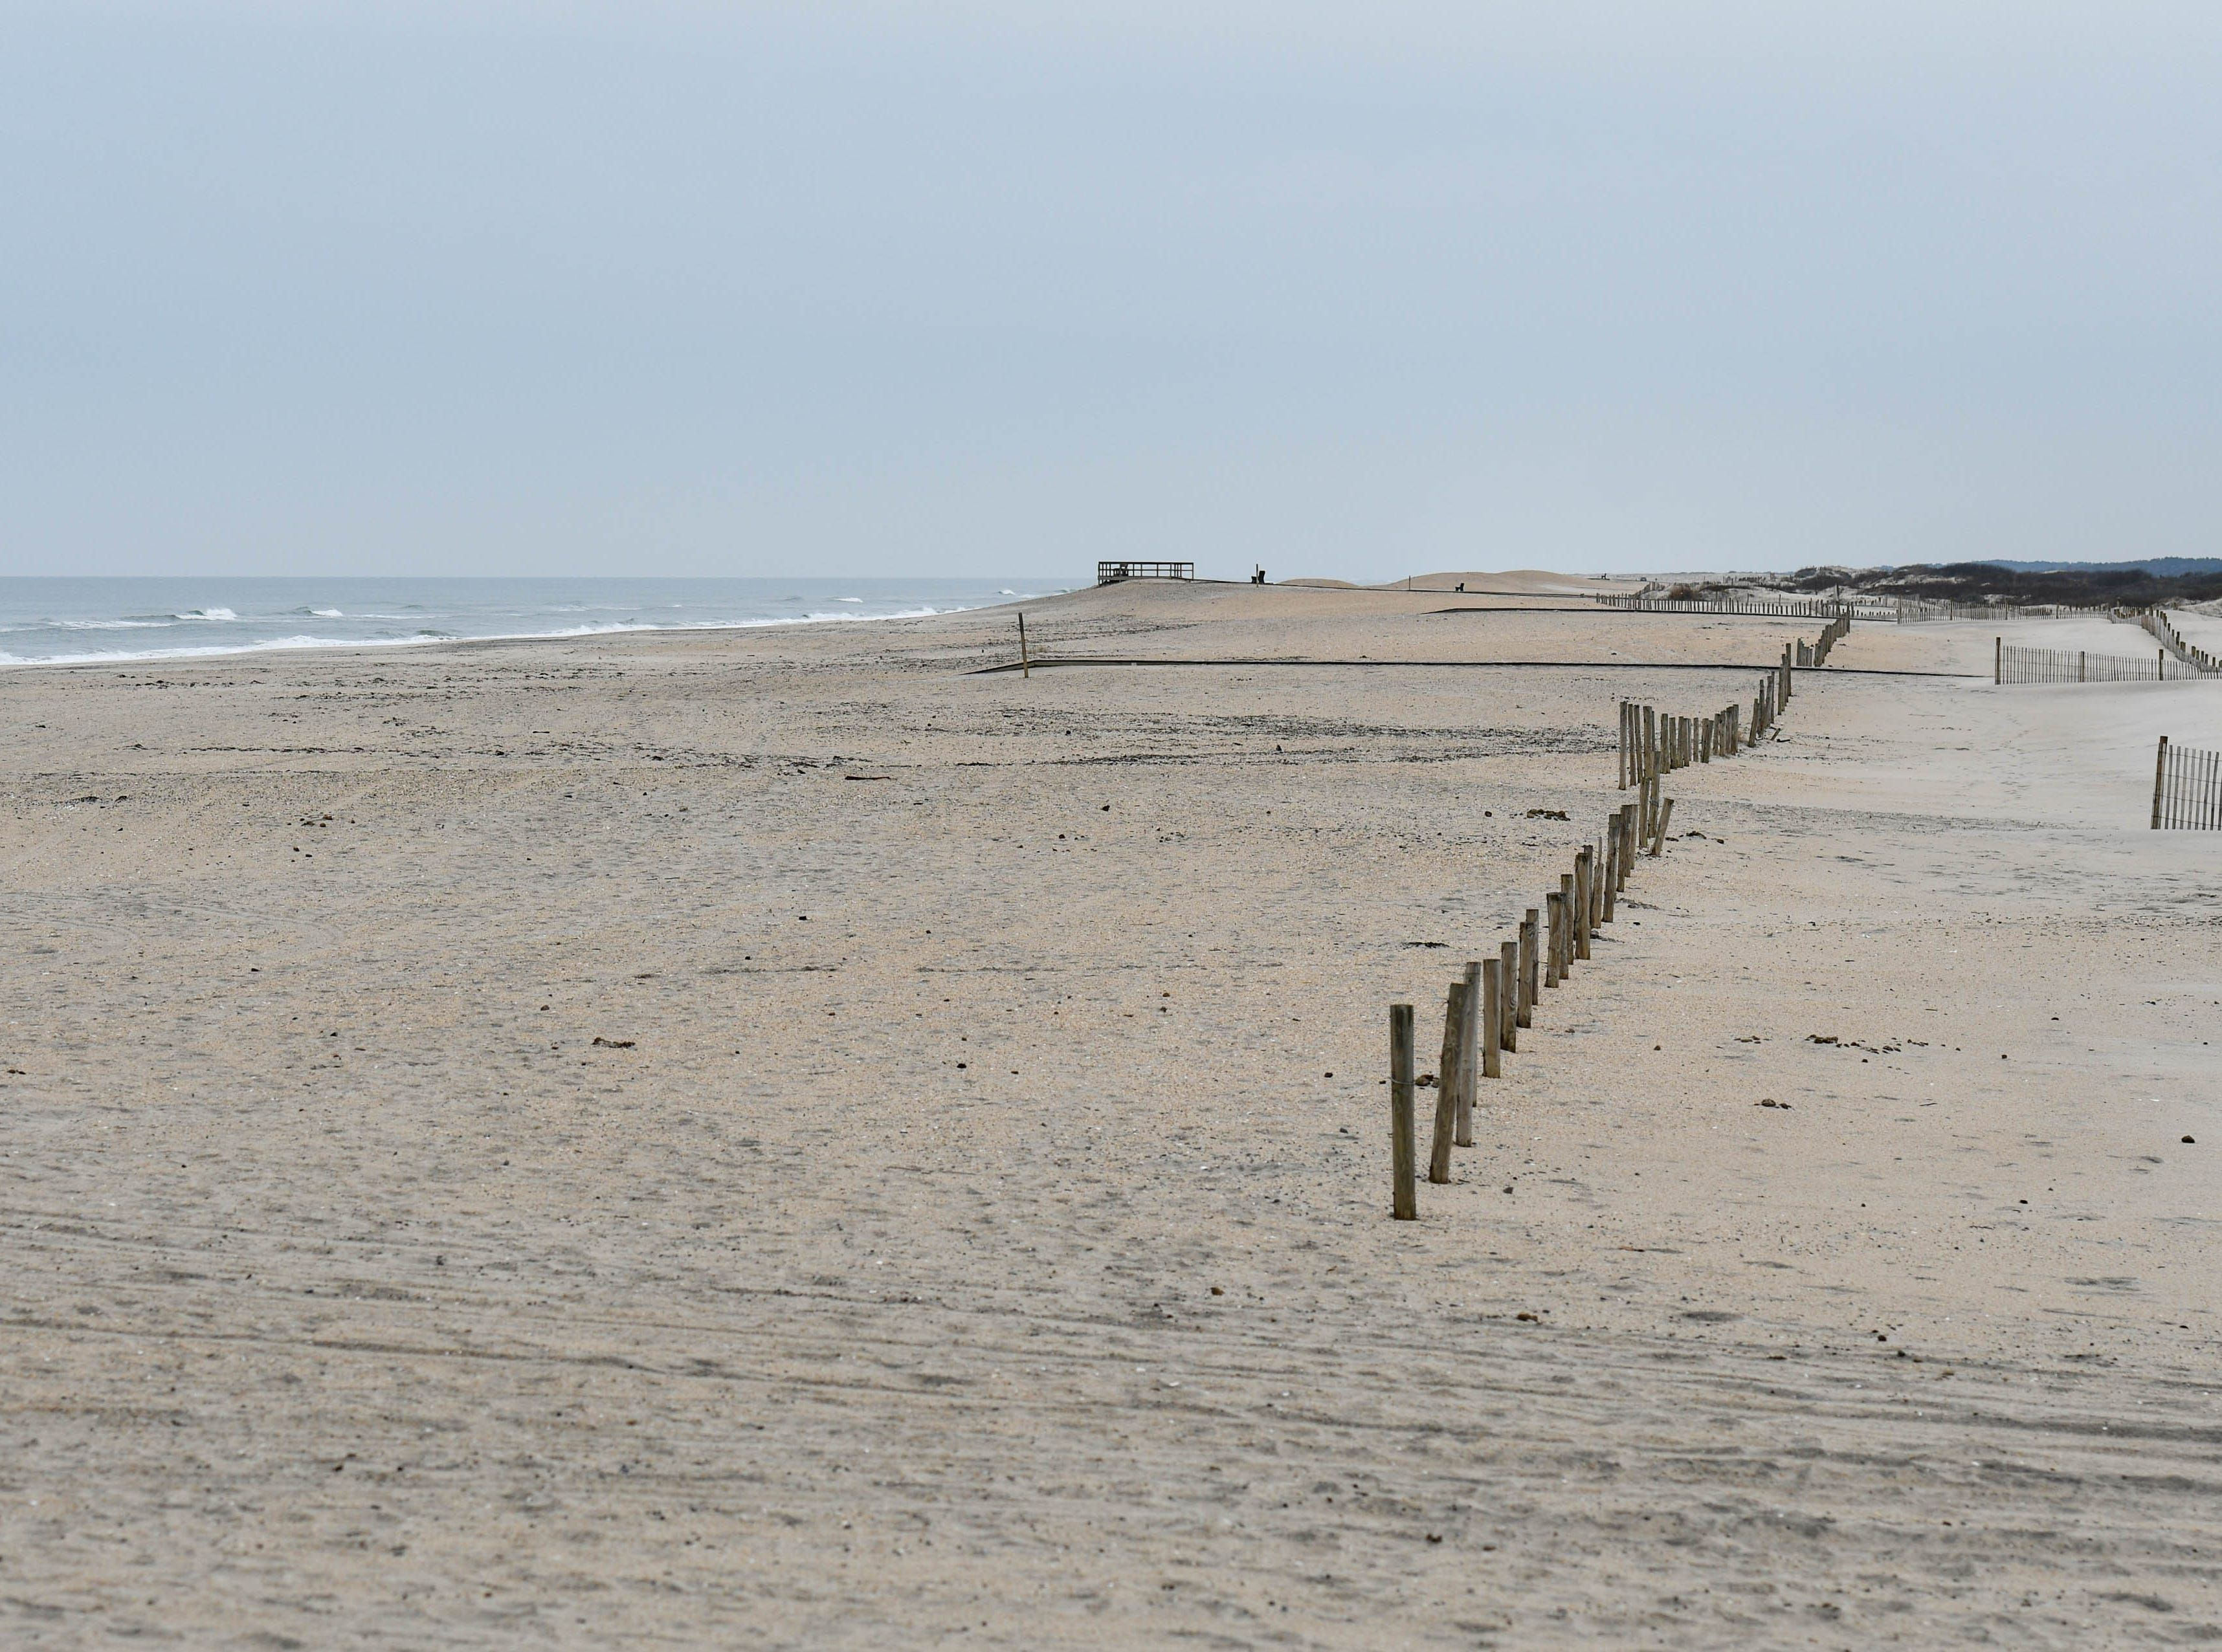 The beach is quiet at Assateague National Park on Thursday, Jan 3, 2018. The park remains open during the federal government shutdown, however visitors services are not being provided.